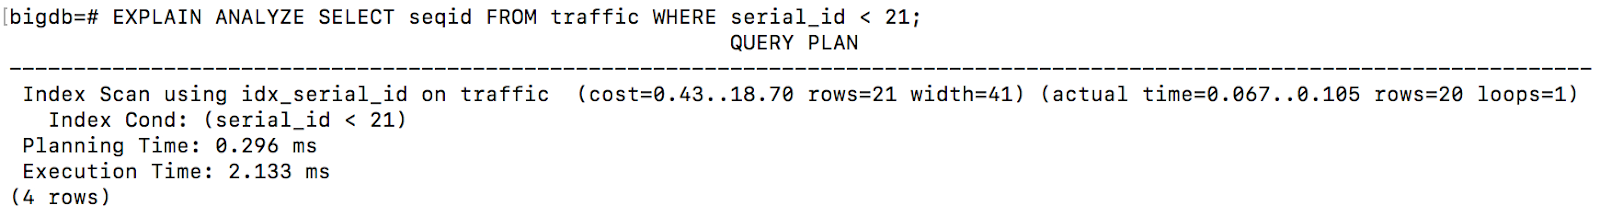 Image showing an example query plan using explain analyze